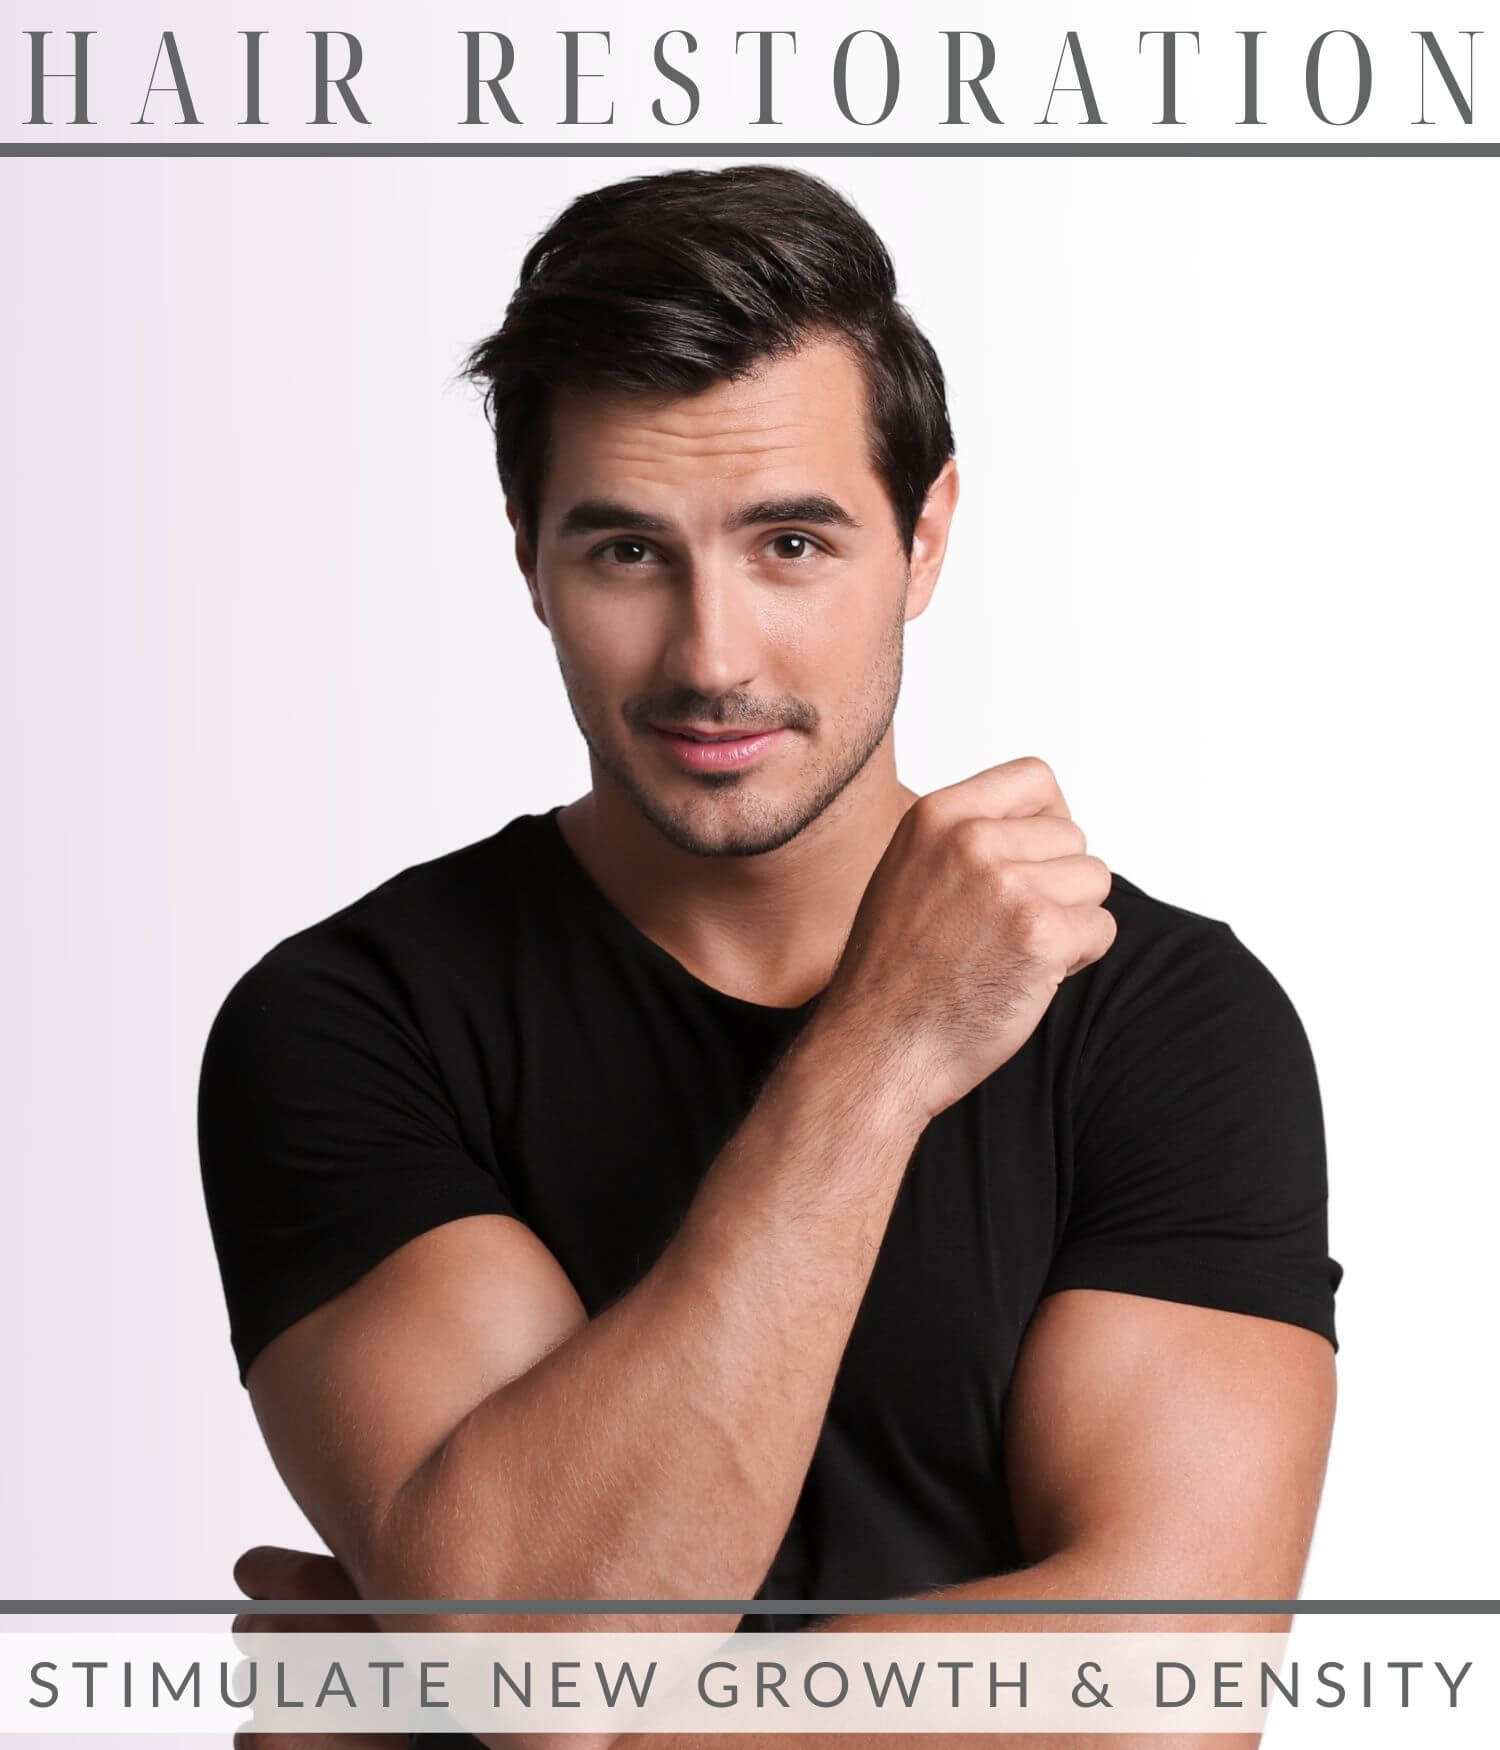 Man with thick hair from hair restoration treatment at CRMC Aesthetics